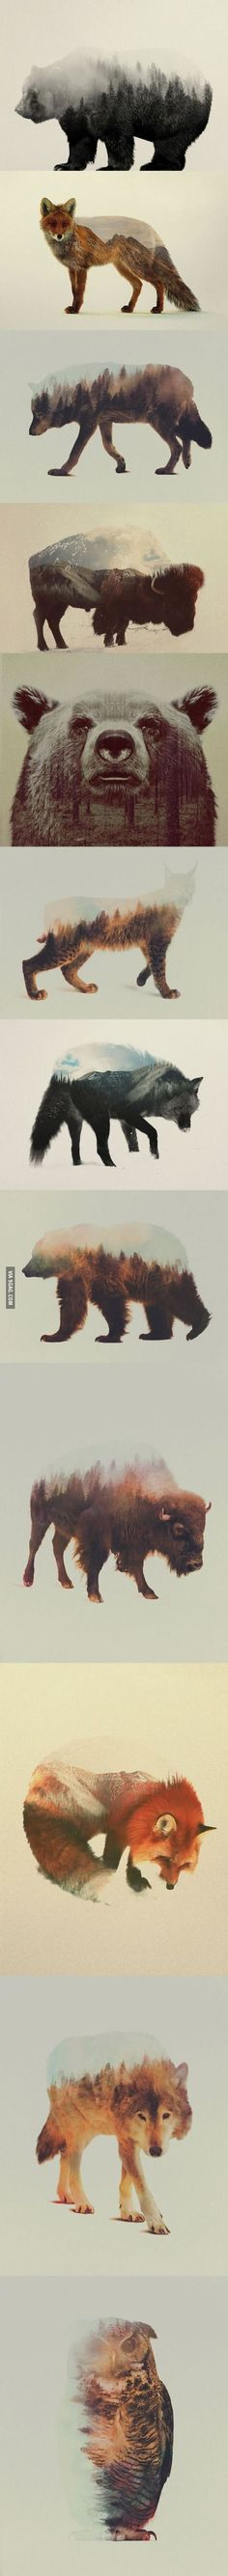 Double Exposure Portraits of Animals Reflecting Their Habitat by Andreas Lie - might be an awesome tattoo idea too!